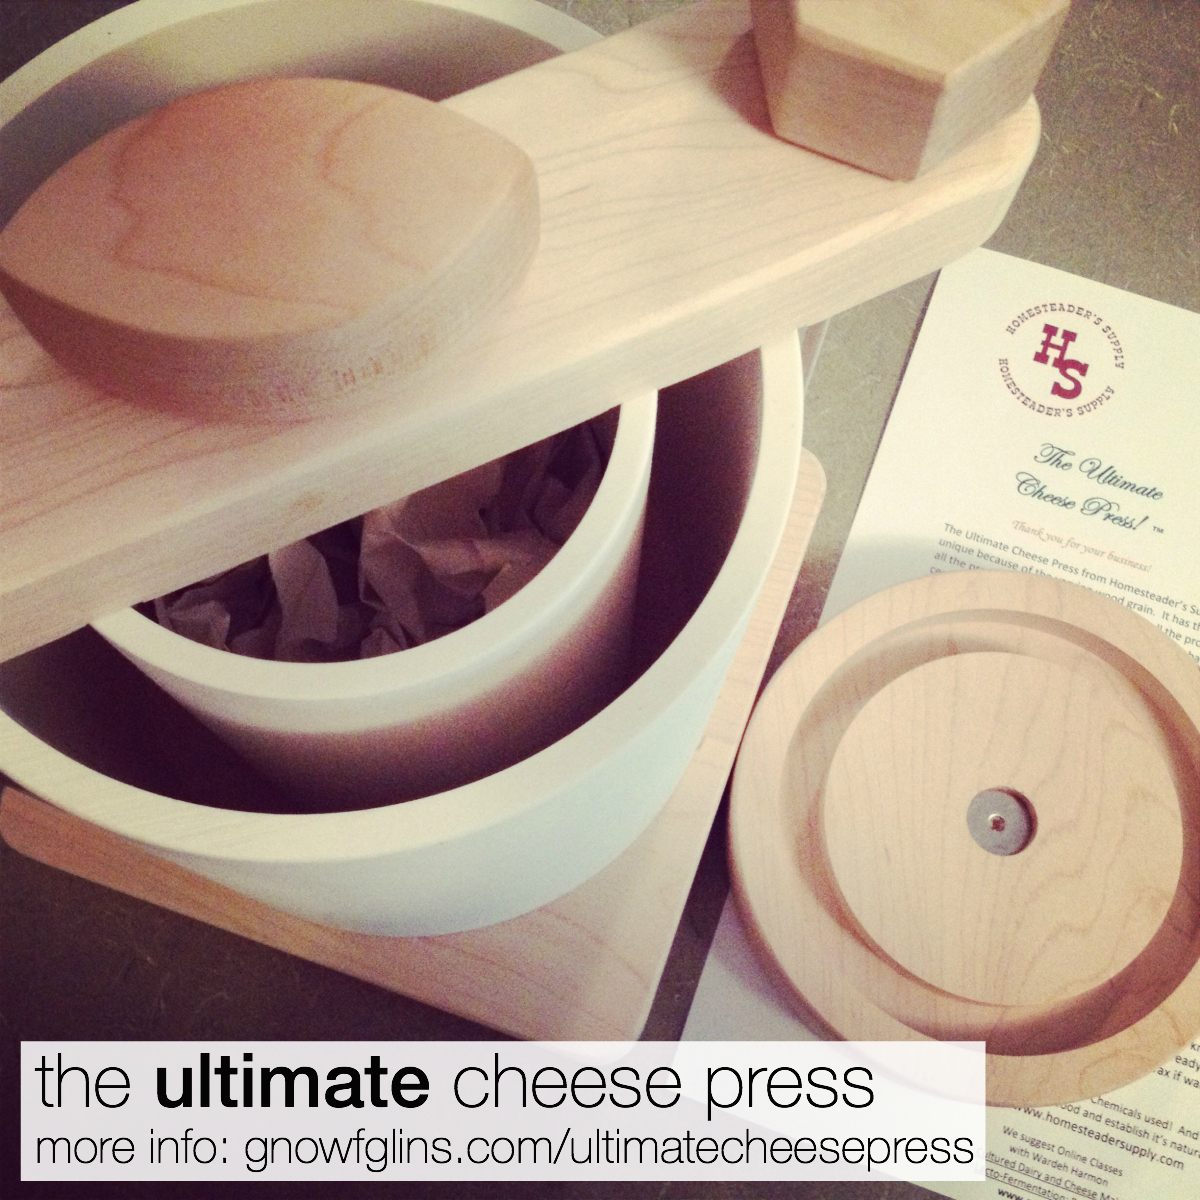 (Video Review and How-To) The Ultimate Cheese Press GNOWFGLINS | I had a treat recently -- Jerri and Nance from HomesteaderSupply.com sent me a cheesepress as a gift. Not just any press, but The Ultimate Cheese Press. I like this cheesepress so much, I made a video to show you how to use it. In the video, you'll see it's a breeze to make cheese, plus I share why I like it so much. Please do watch the video, and you'll see how easy it is to make cheese. | TraditionalCookingSchool.com